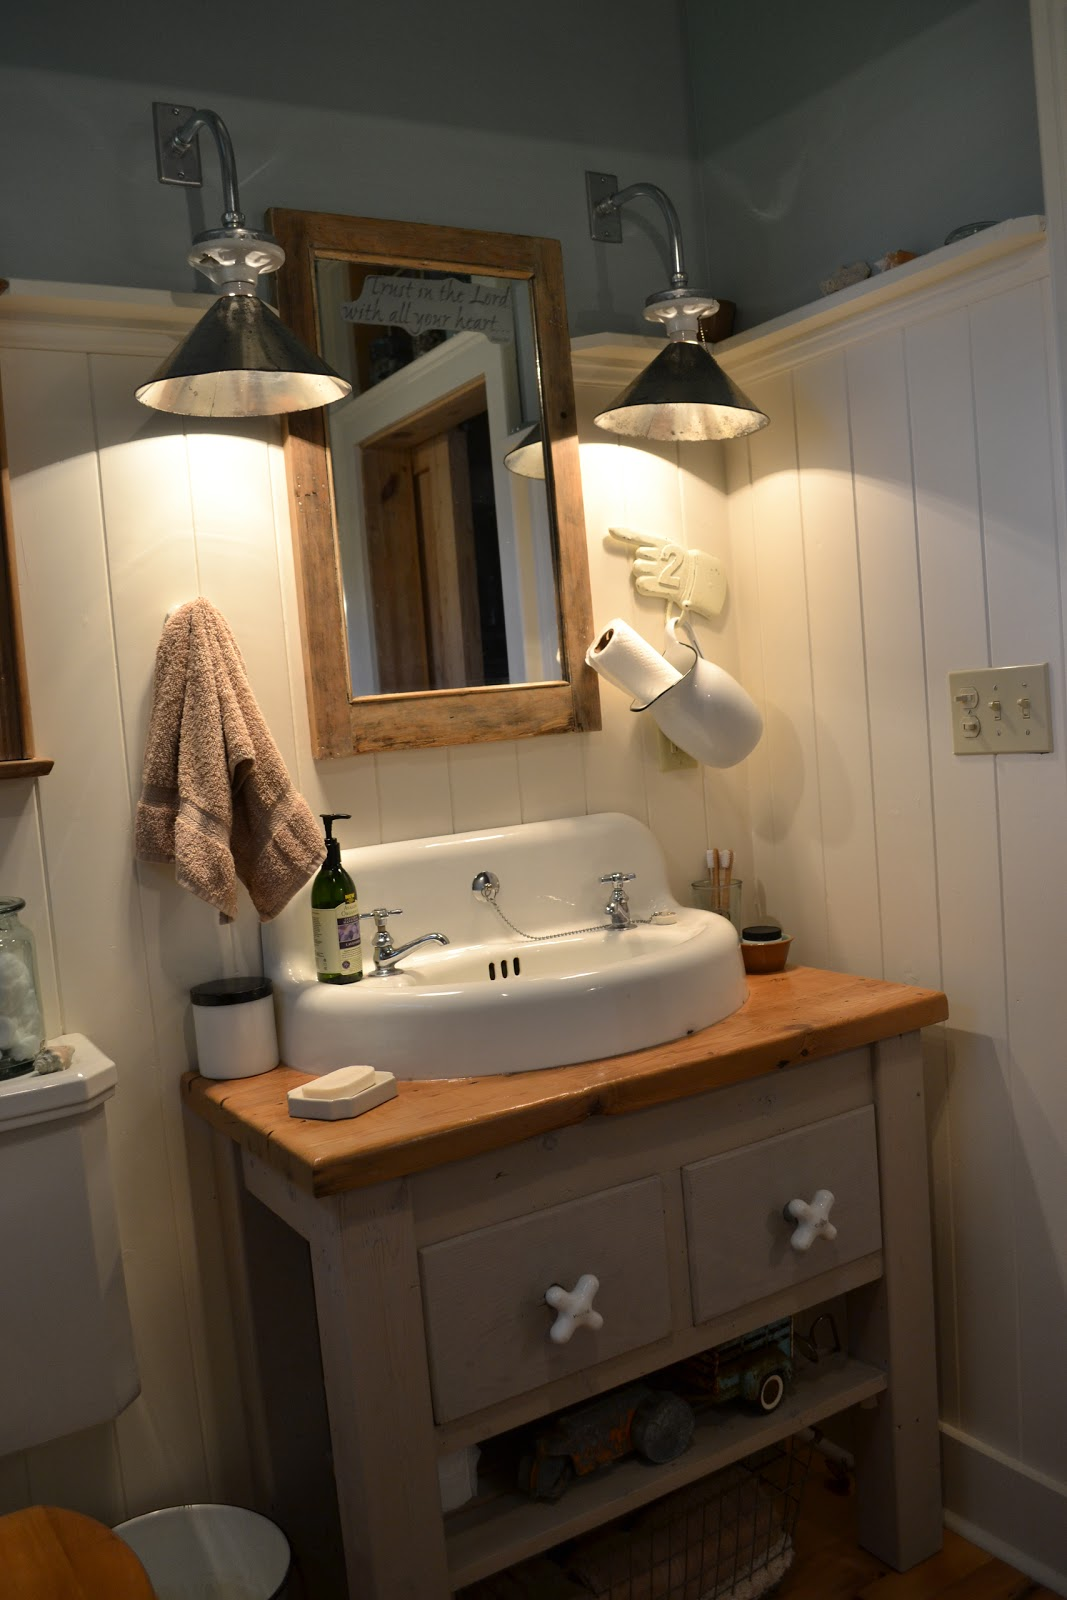 the 1829 farmhouse farmhouse tour bathroom